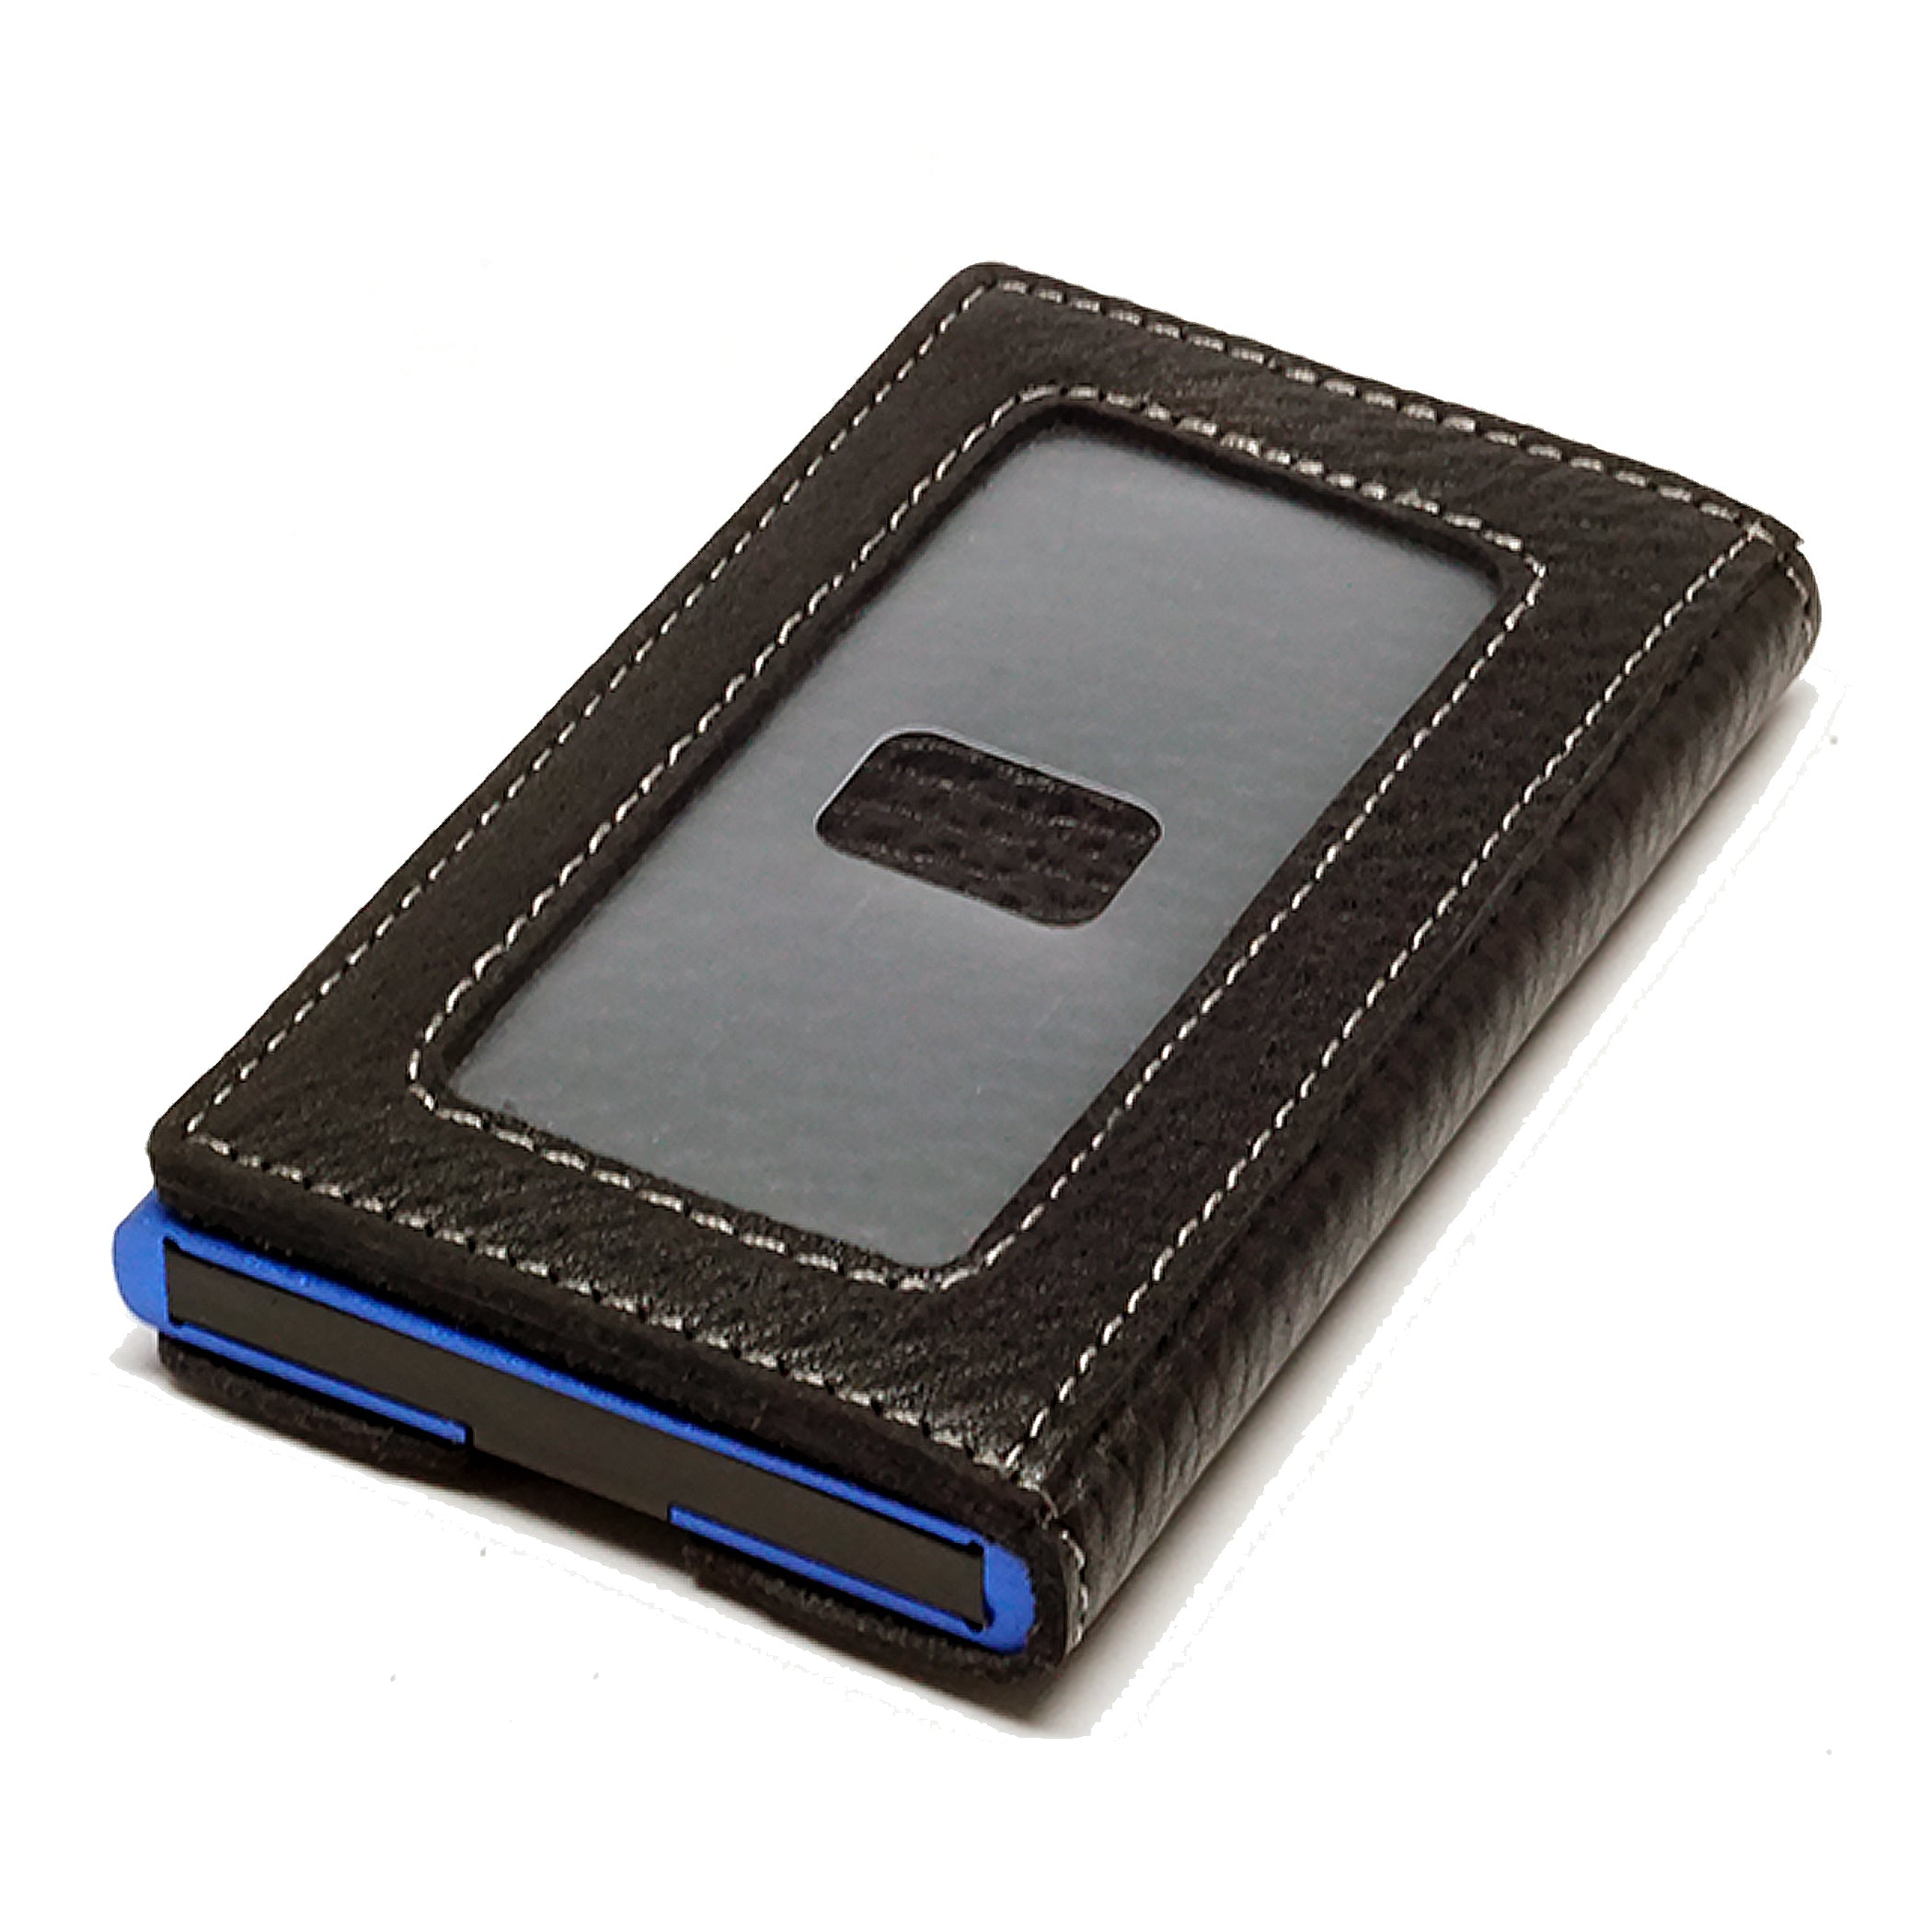 Card Blocr Credit Card Holder in Blue Wrapped in Black Leather | RFID Wallet Backside